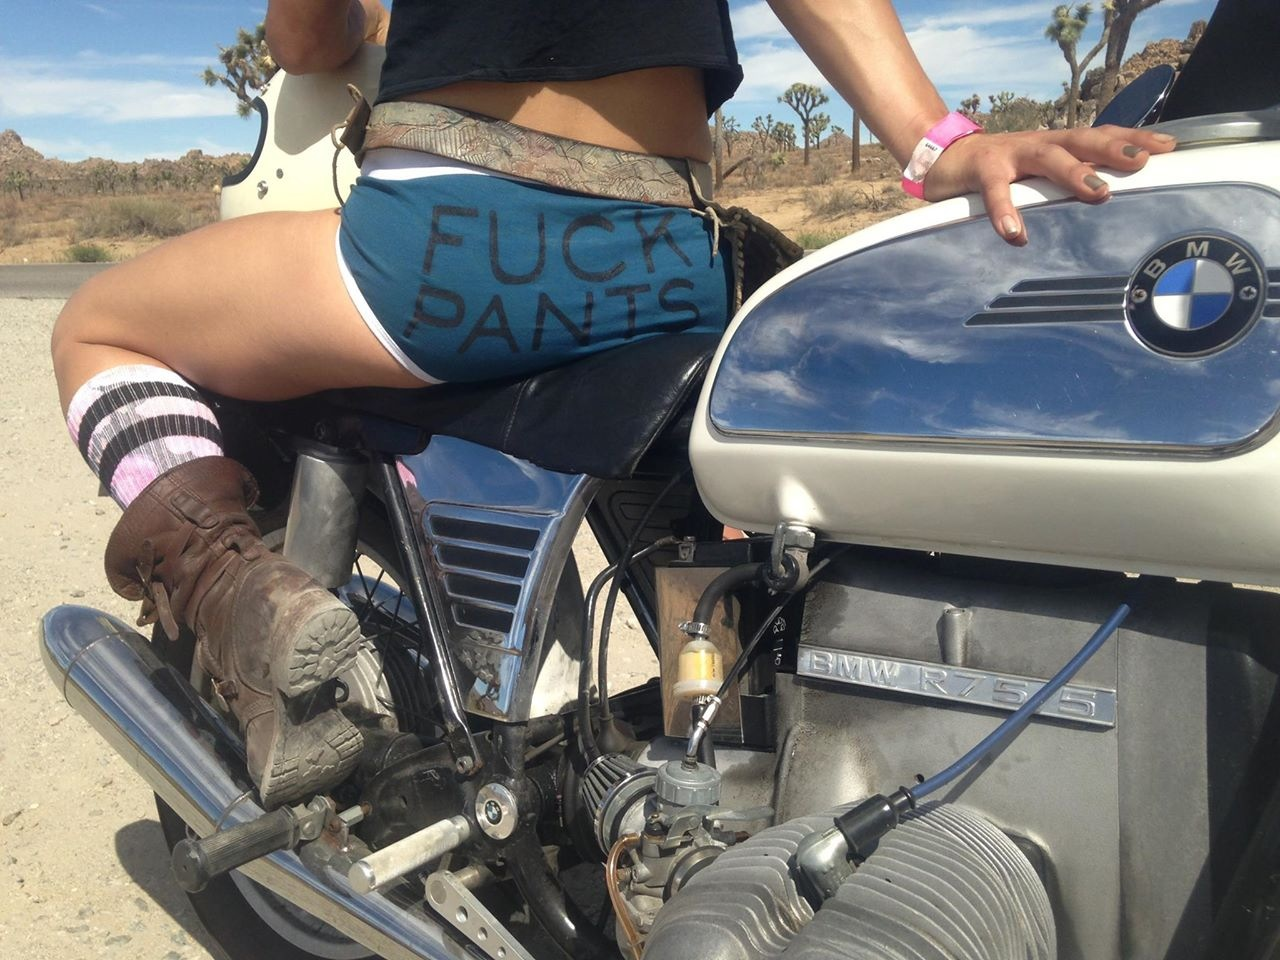 20 Photos of Badass Babes on Motorcycles + Hinterland Empire GIVEAWAY!